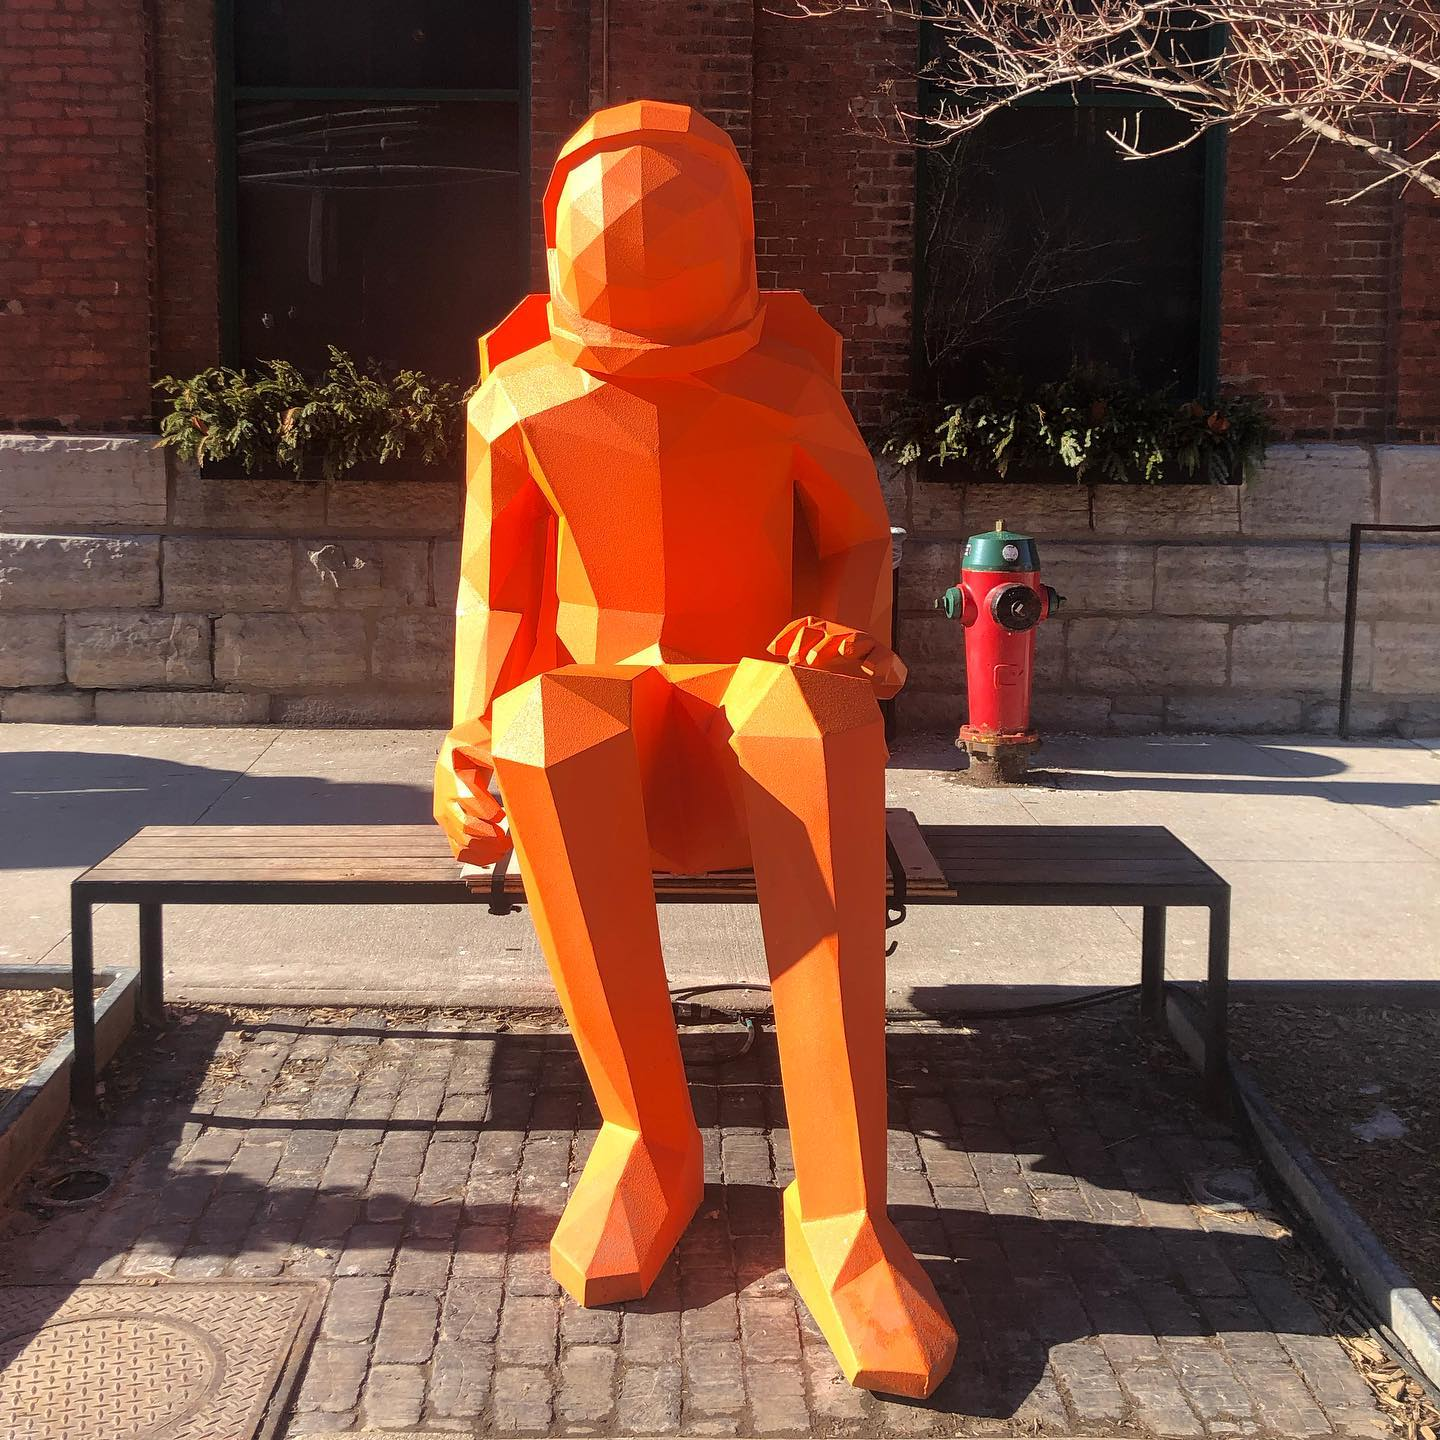 We recently popped by the Distillery District to check out the public art on display. Our fav was definitely the Sydmonauts commissioned by Amigo & Amigo — a Sydney based sculpture & design studio. Go check it out before it closes on March 1!